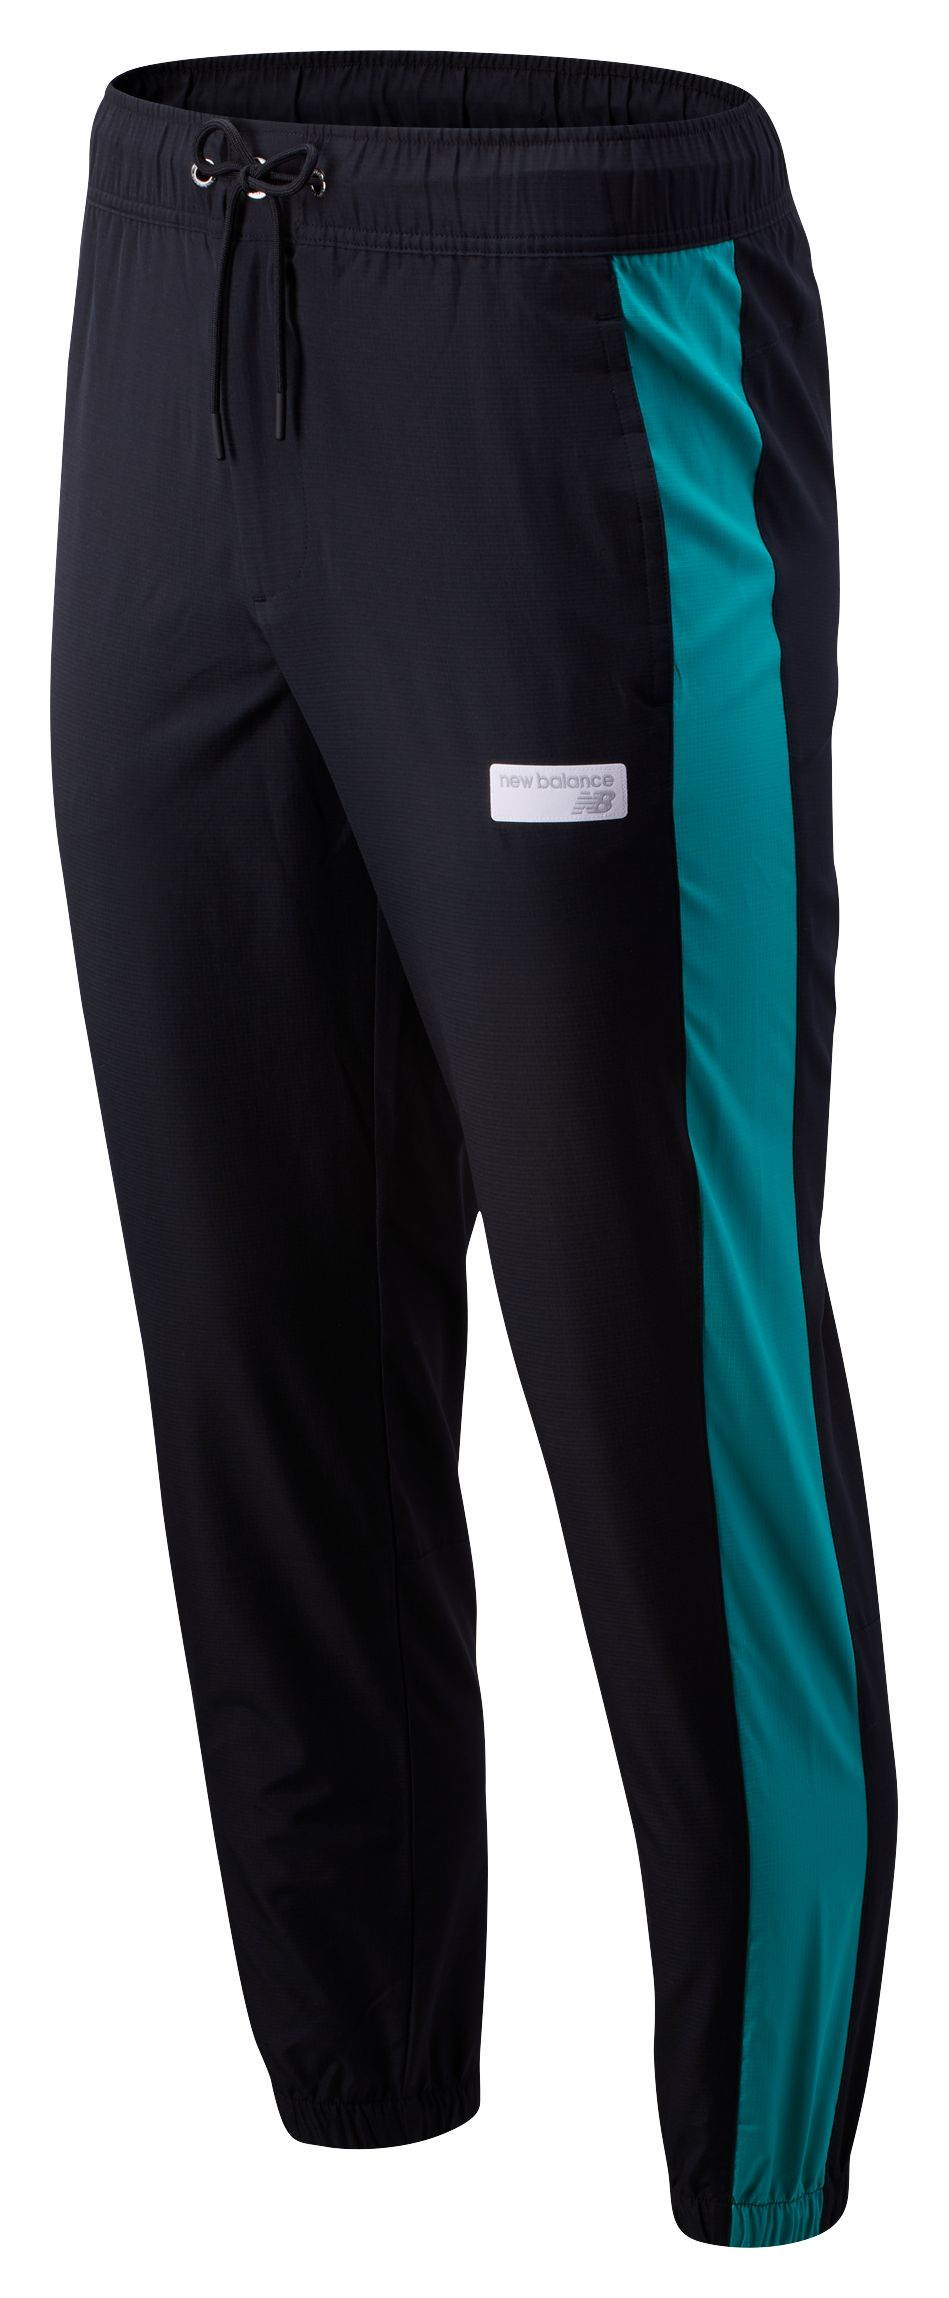 Men's NB Athletics Windbreaker Pant